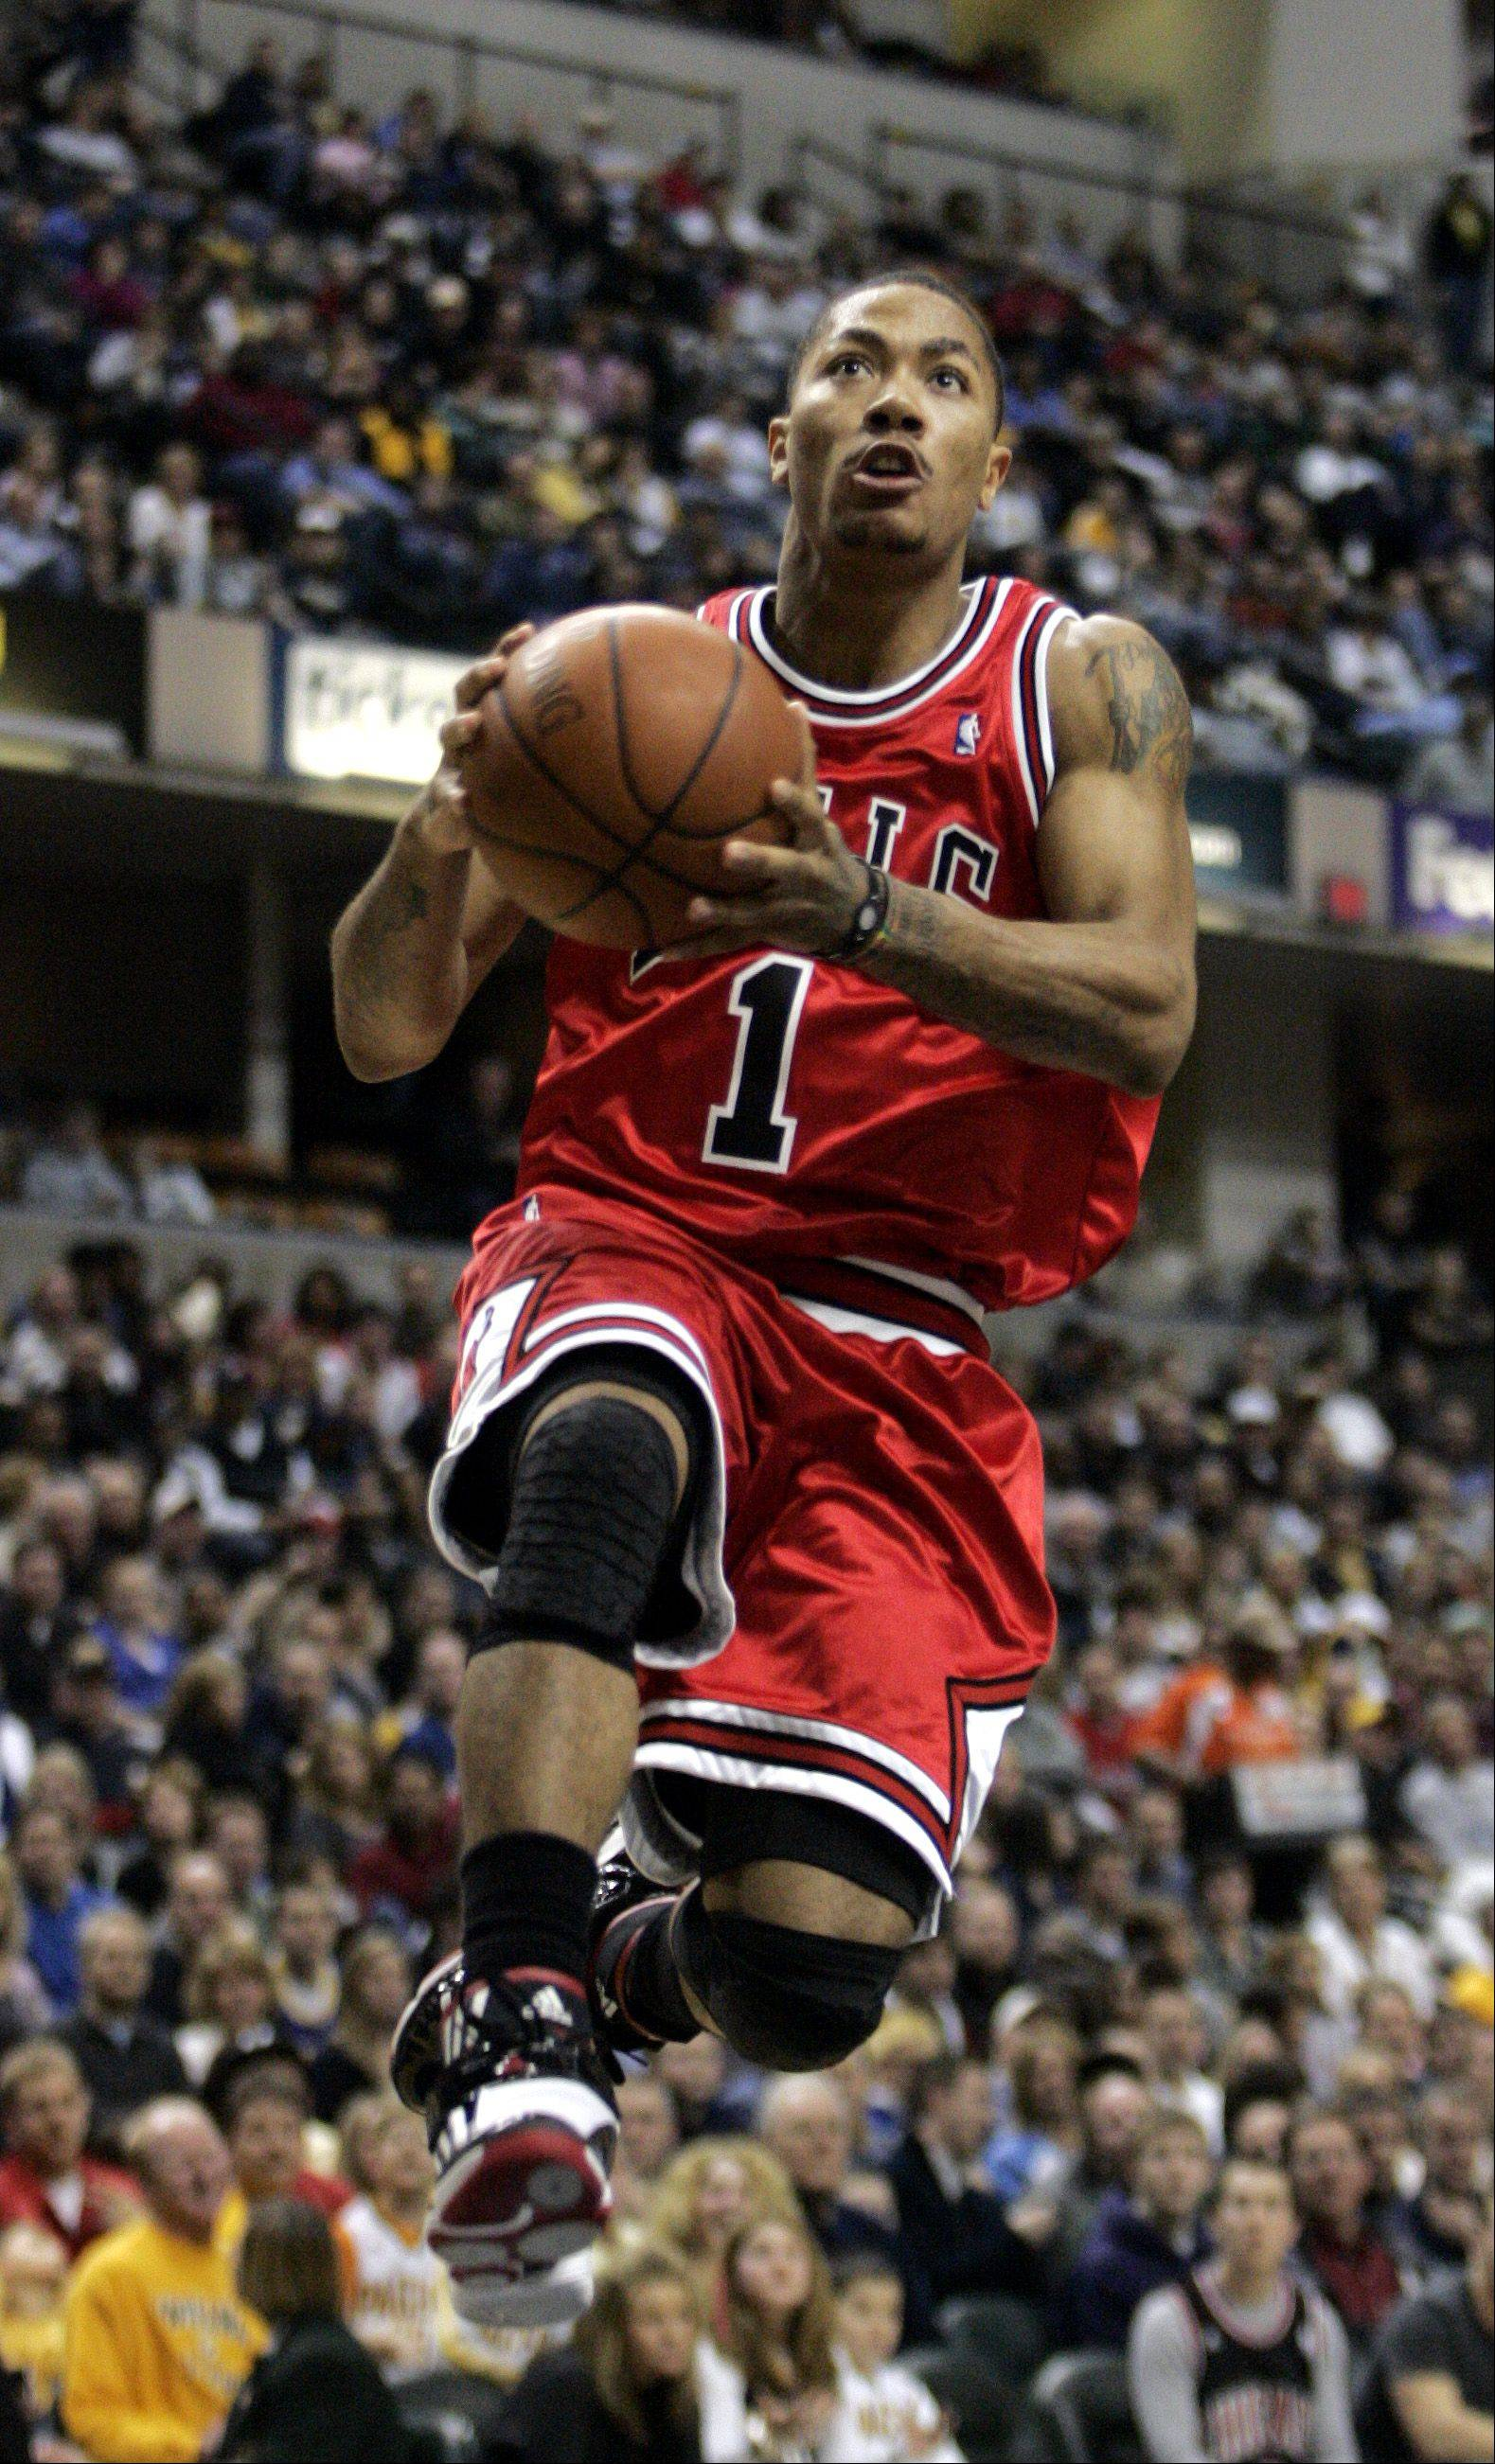 Bulls guard Derrick Rose drives toward the basket during the first half of an NBA basketball game against the Indiana Pacers in Indianapolis, Saturday, Feb. 27, 2010.